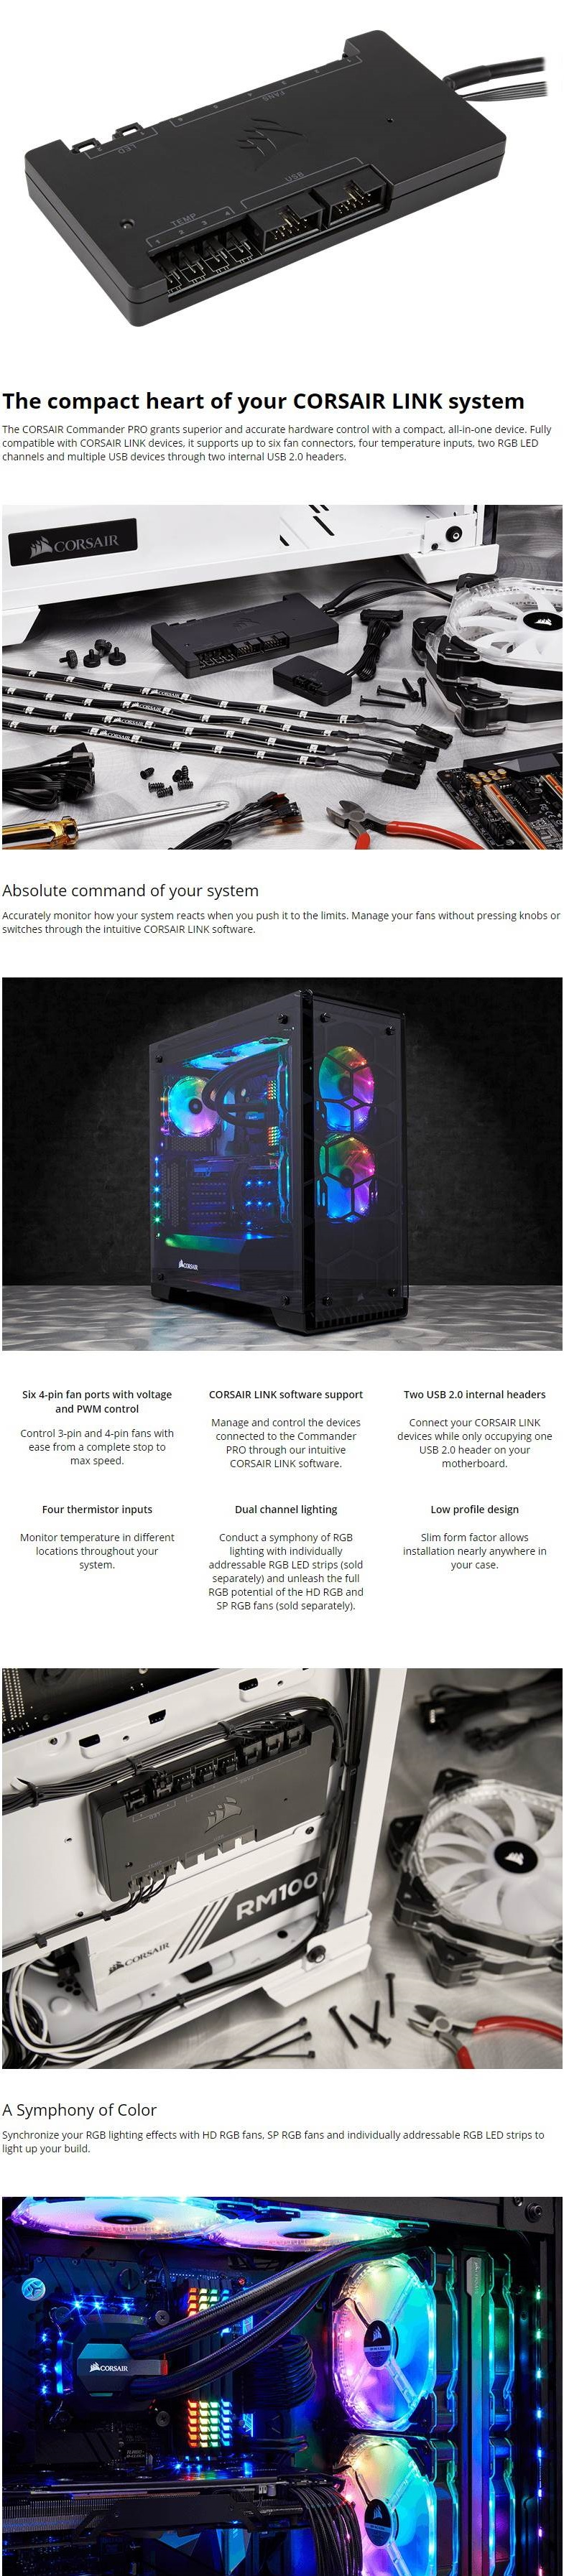 Corsair Commander PRO Digital Fan Hub and RGB Lighting Controller